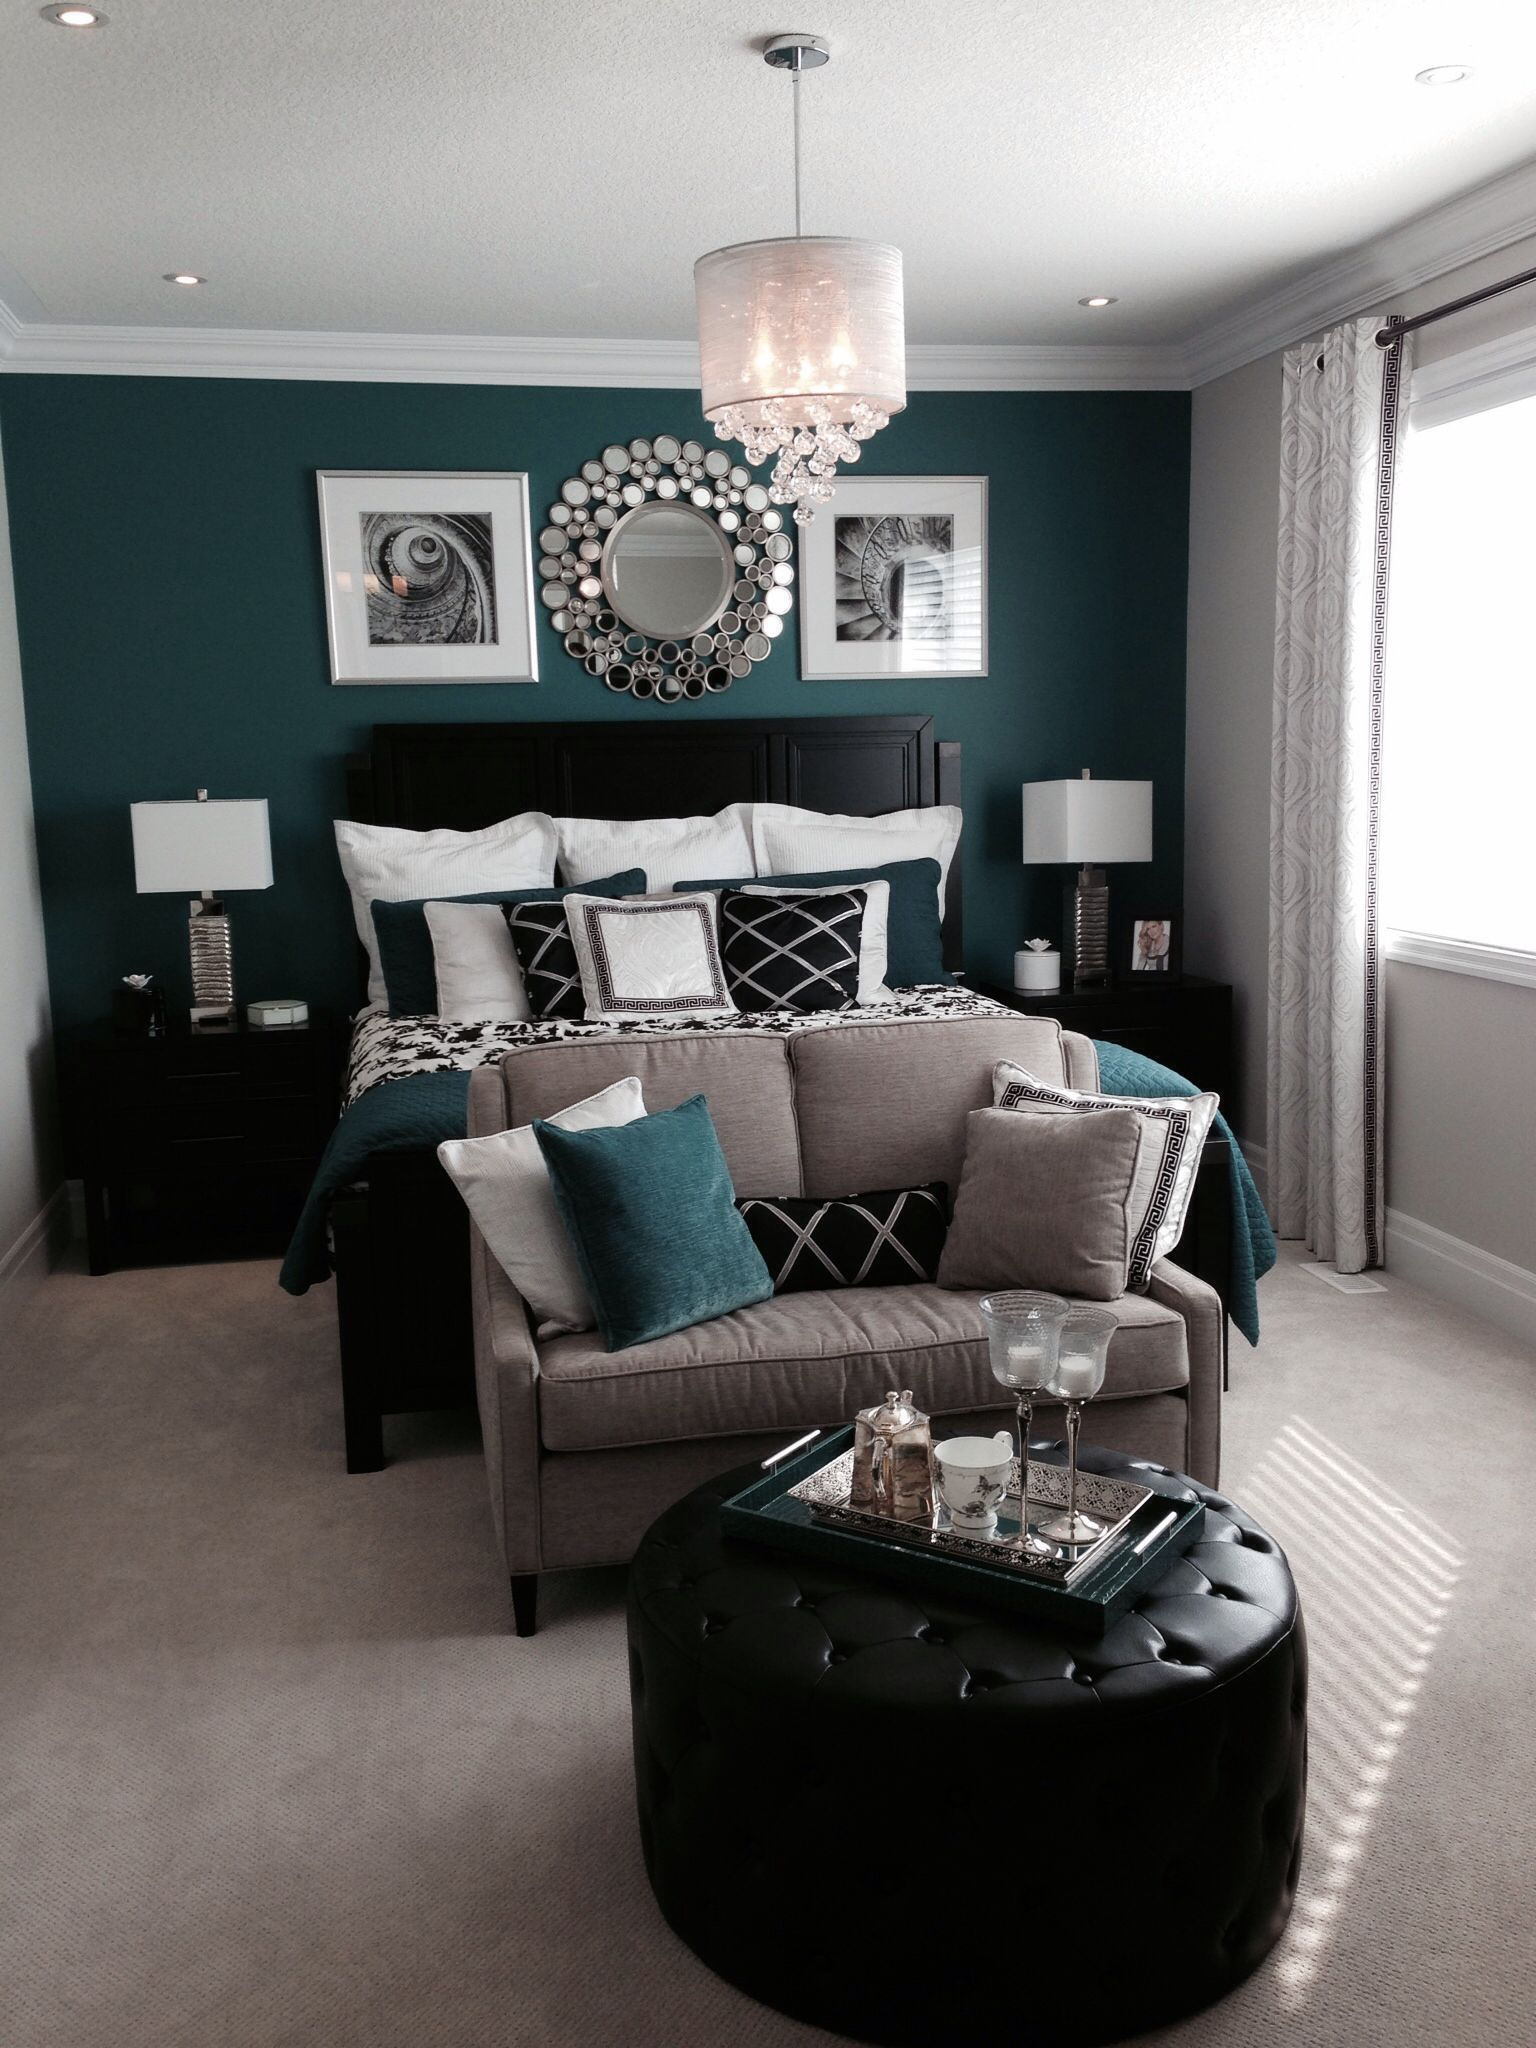 Bedroom with a beautiful green or teal feature, accent